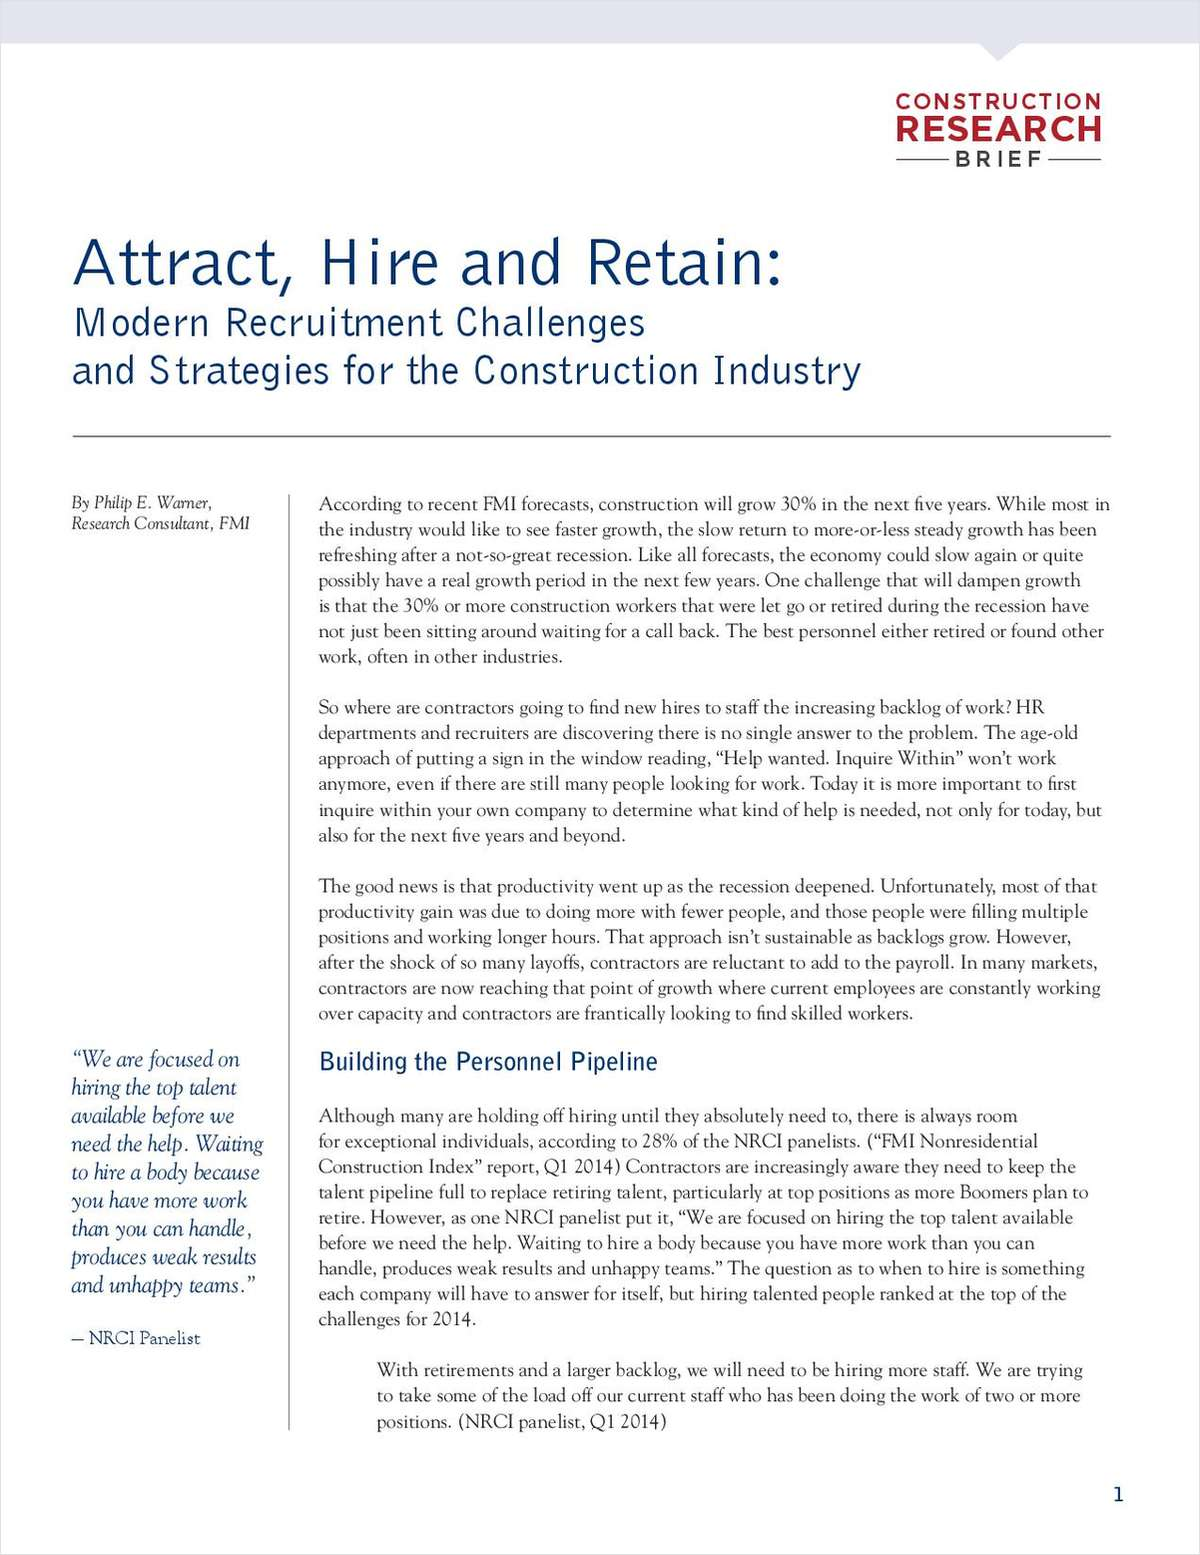 New Research on Construction Hiring Strategies